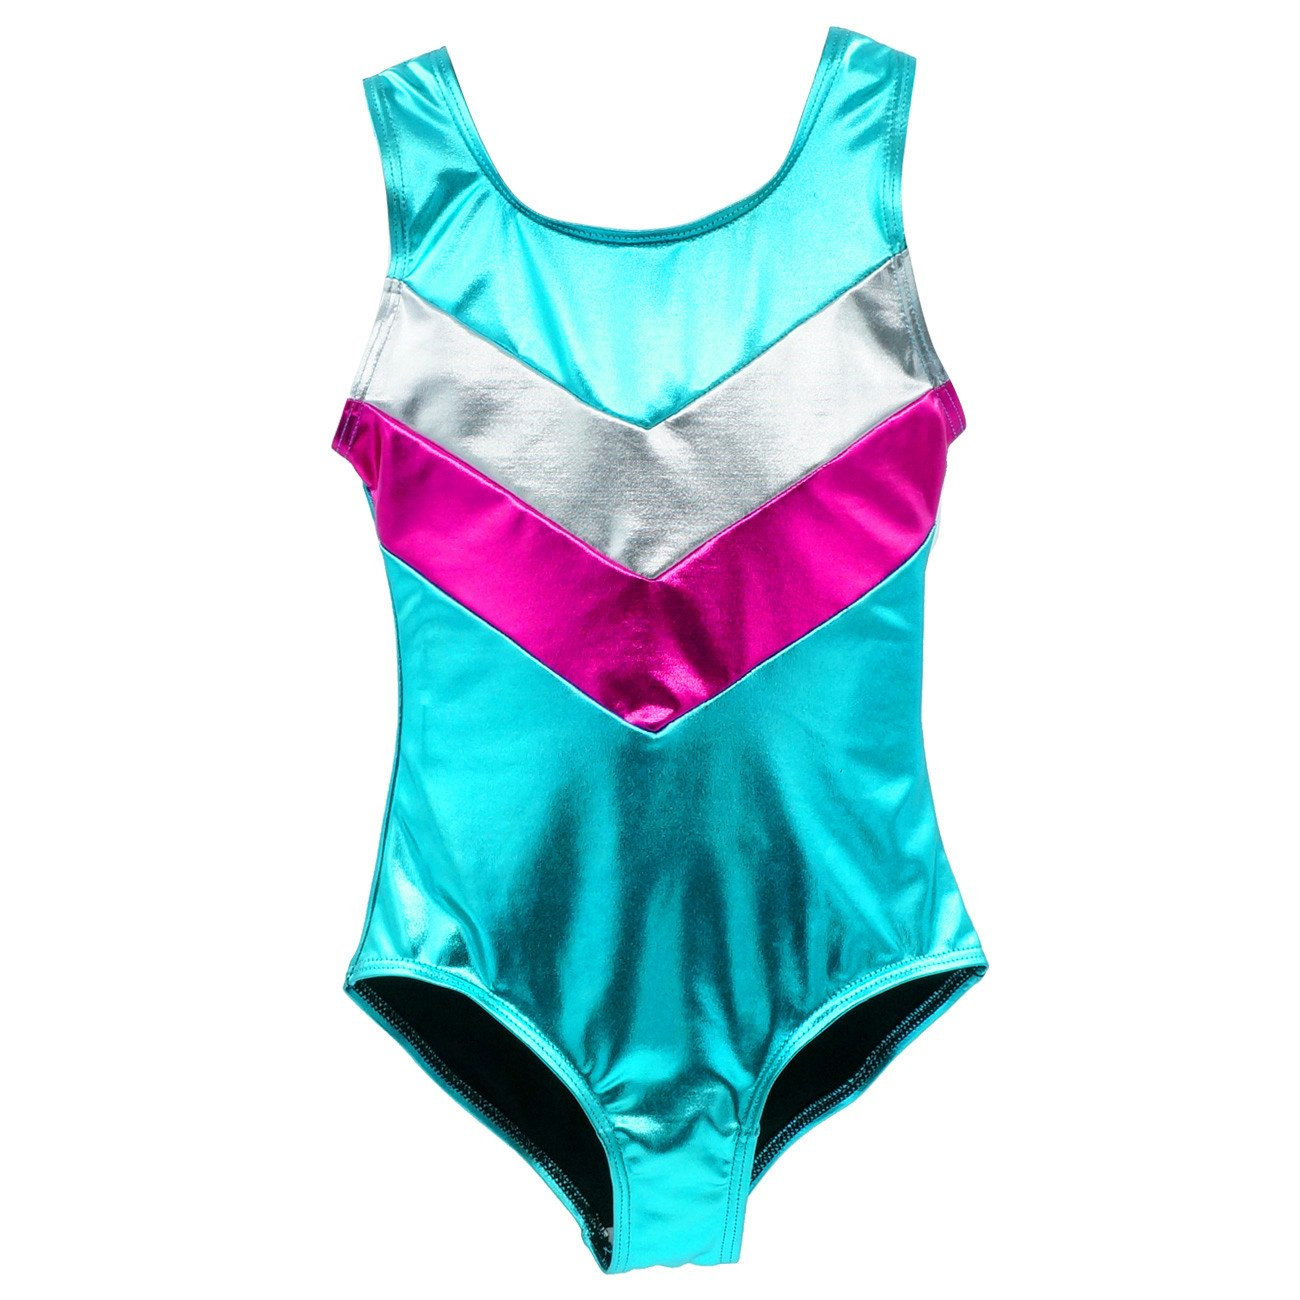 Girls' Gymnastics Sparkle Leotard One-piece Suits Tumbling Dance Activewear Workout Happy Cherry